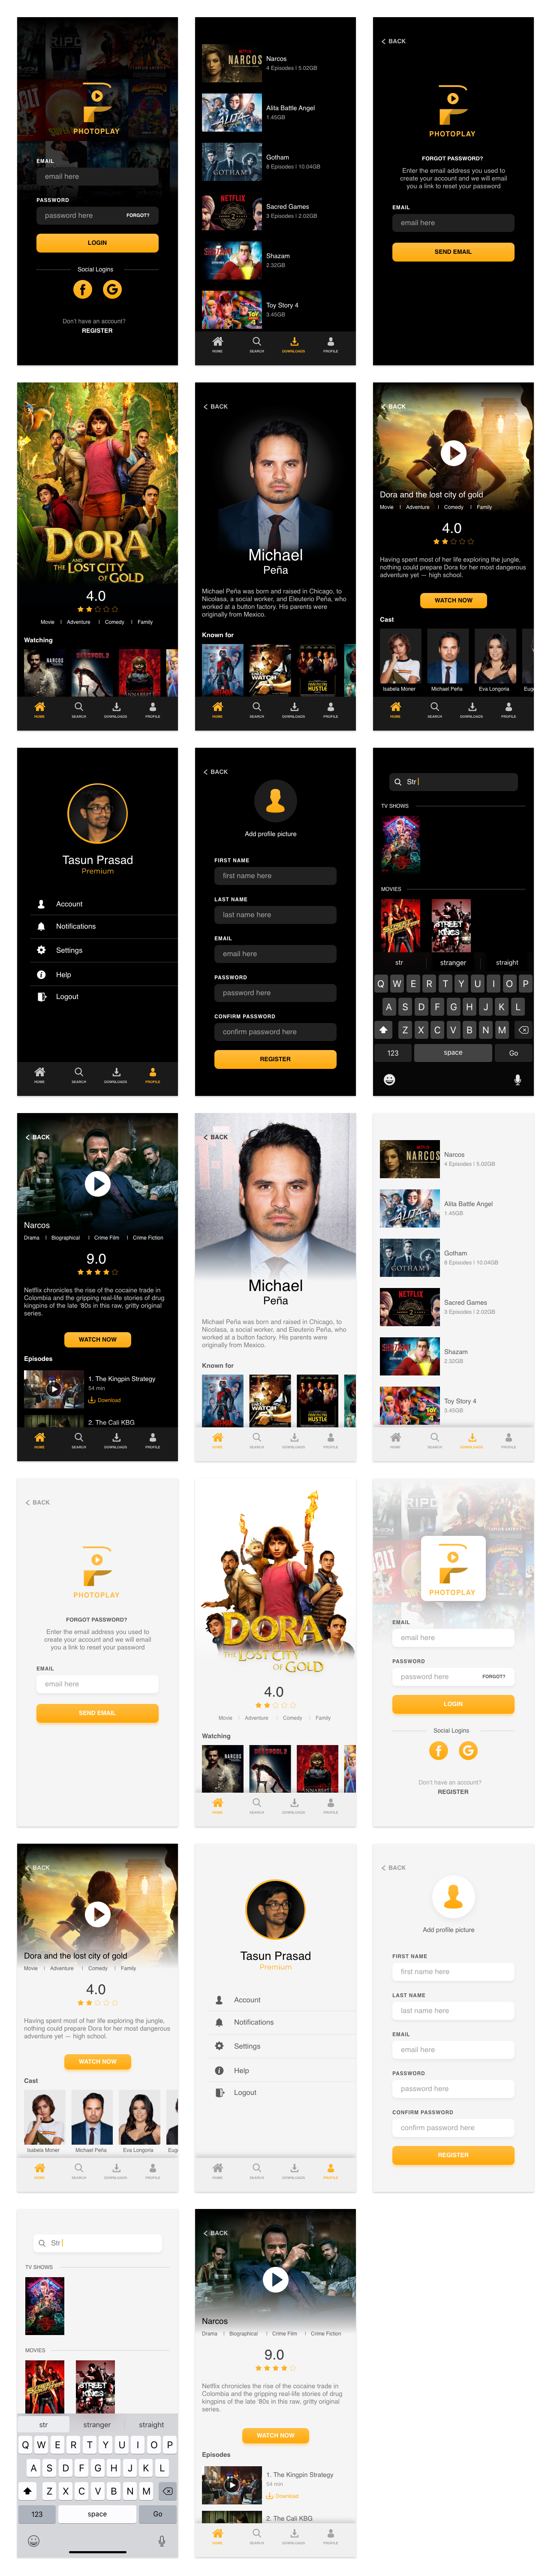 Photoplay Free UI Kit - A movie and TV Show streaming mobile UI Kit. Minimal and clean app design, 20 screens for you to get started.